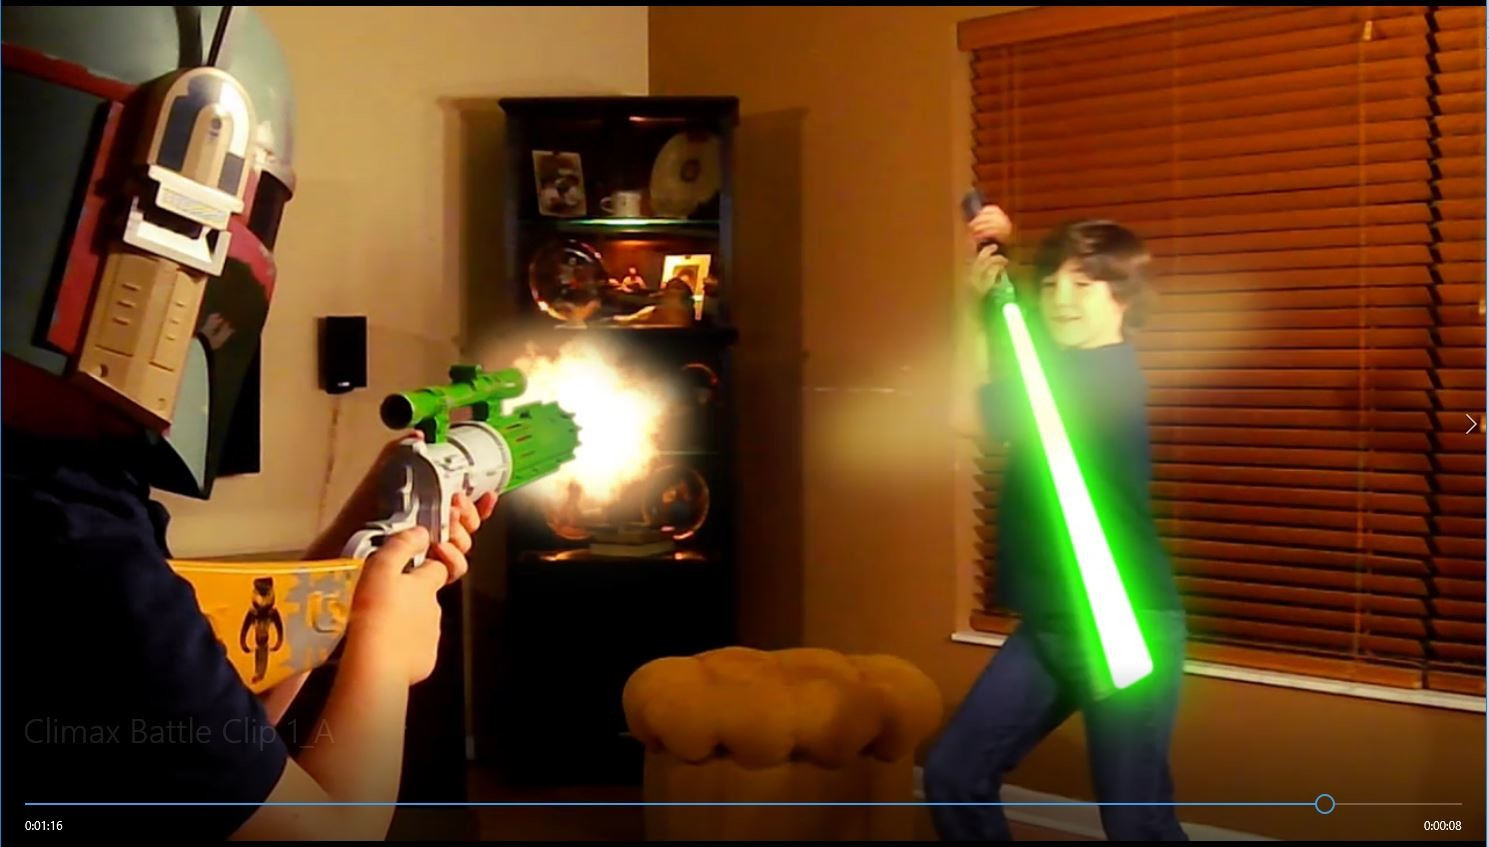 The former Padawan embraces a barrage of blaster fire with the Force guiding his every move.